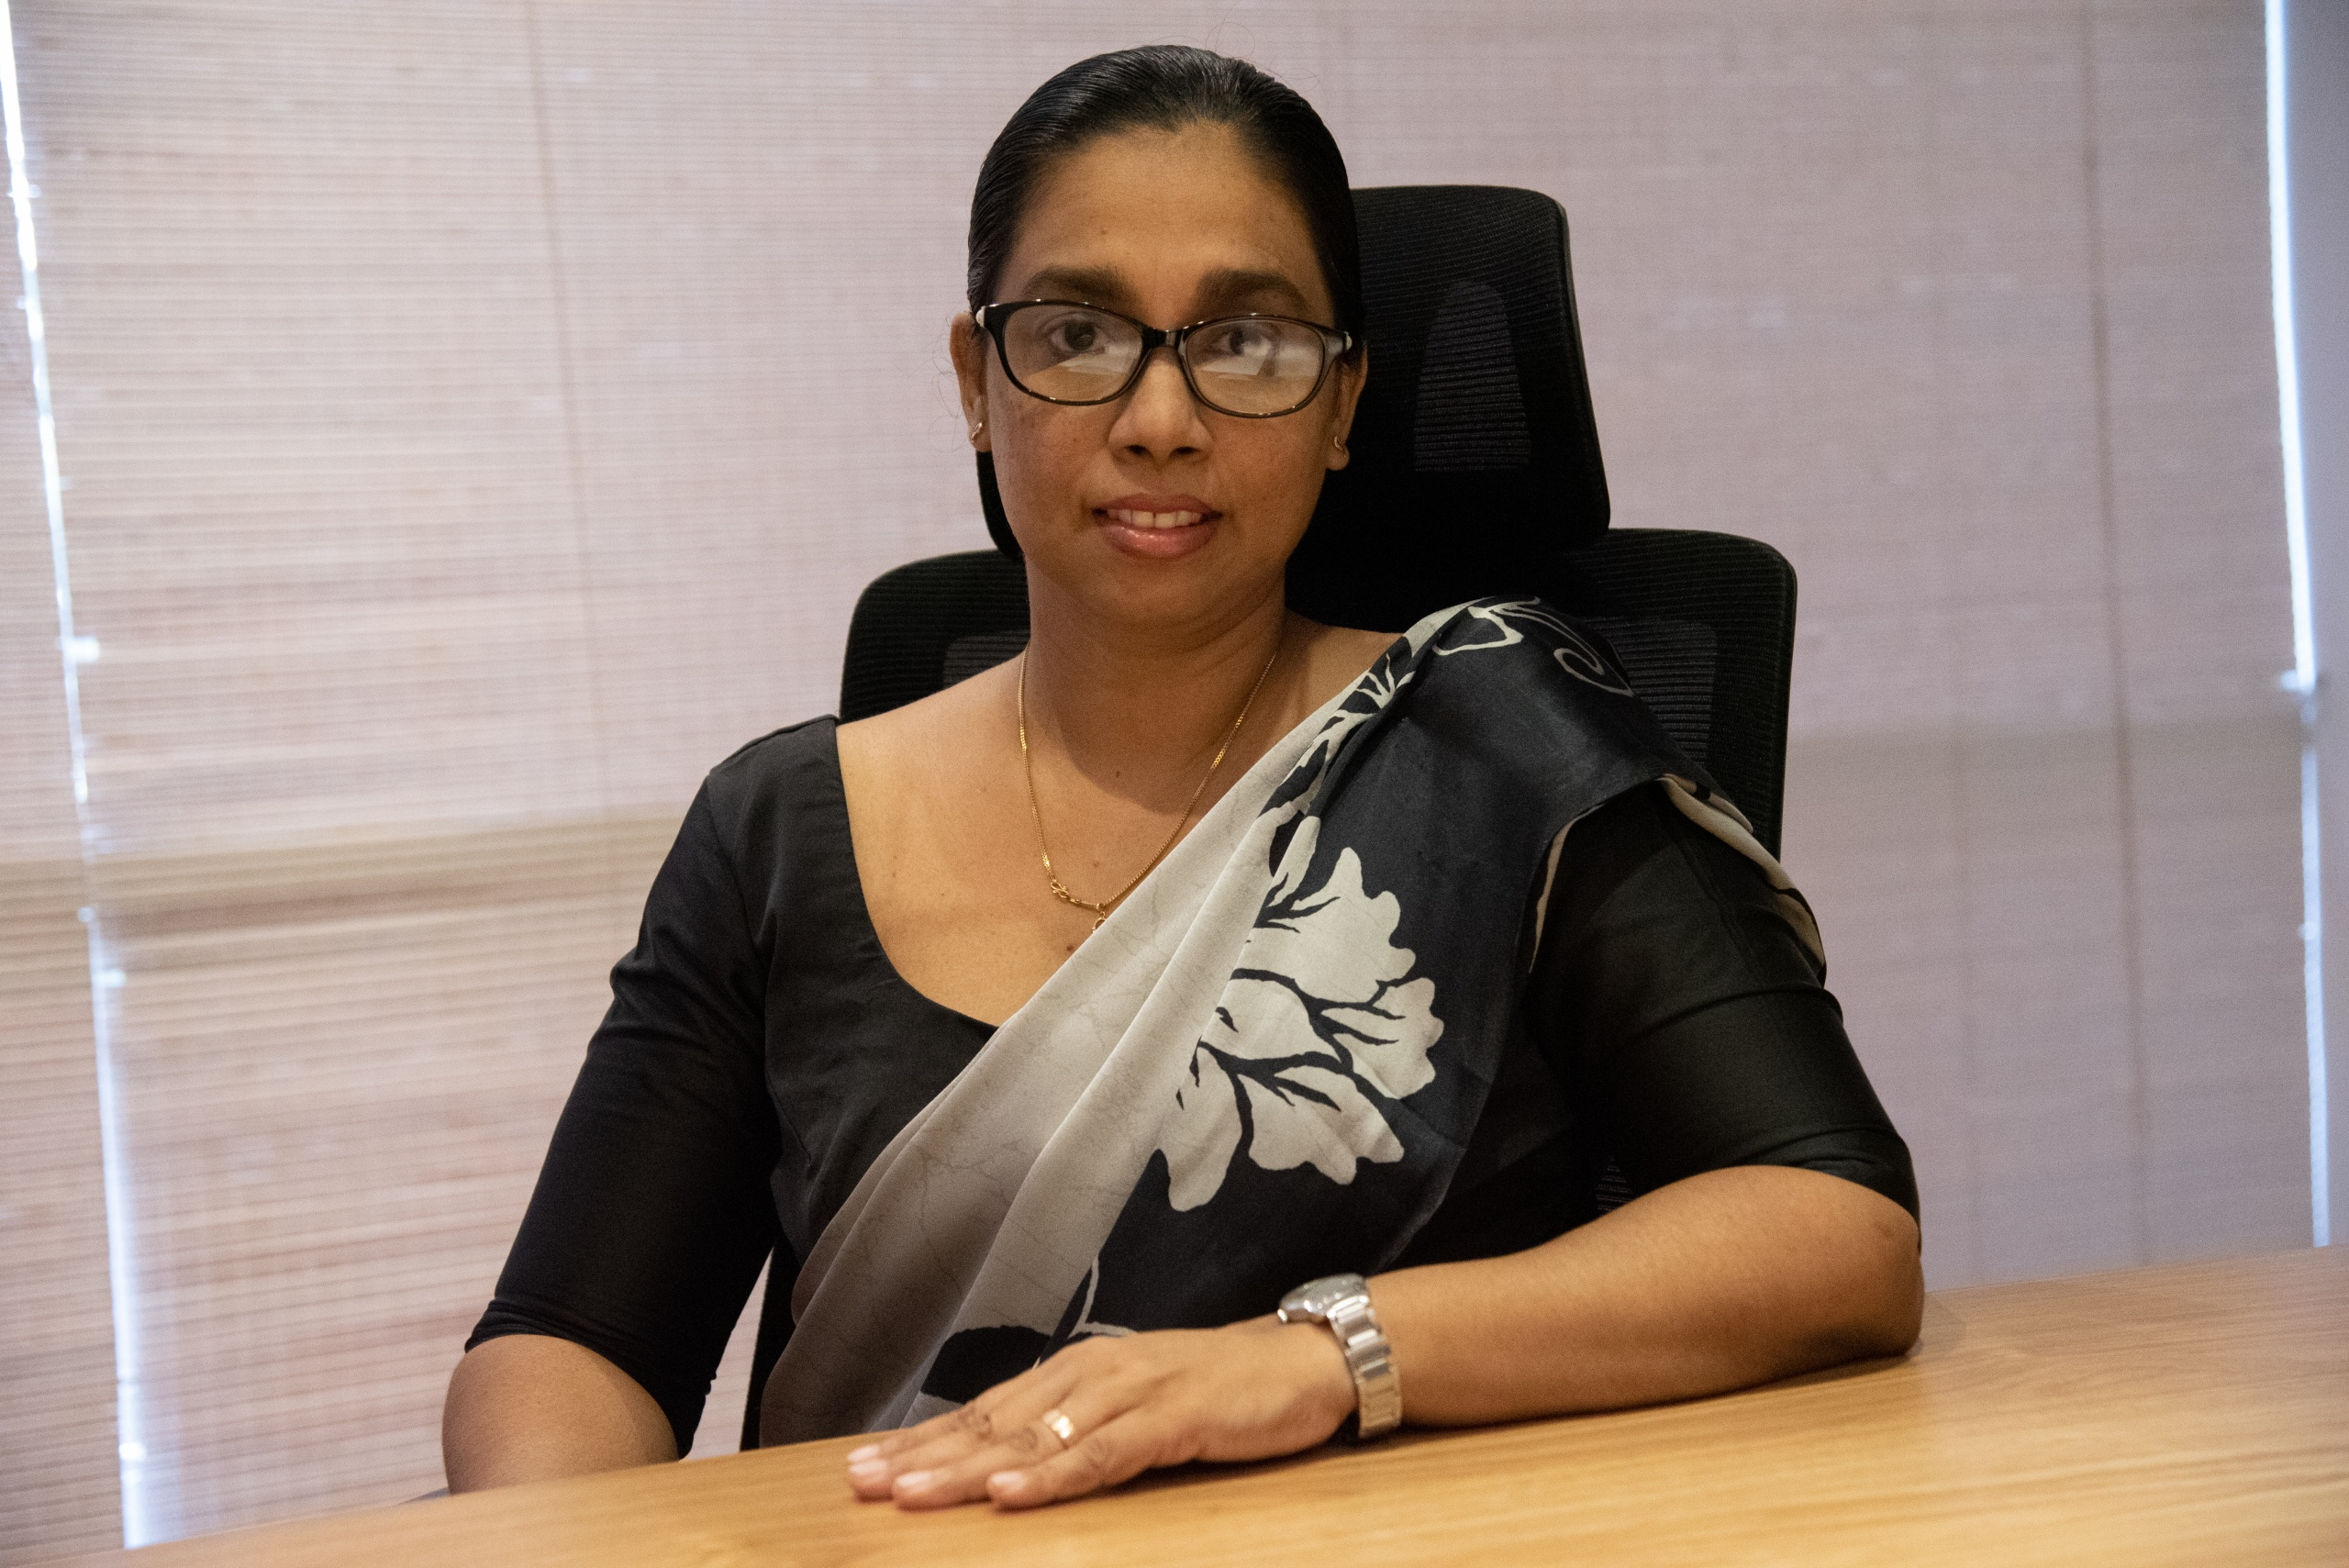 A distribution so desirable – Dilhani Weerarathne, Director of RTA Logistic Services